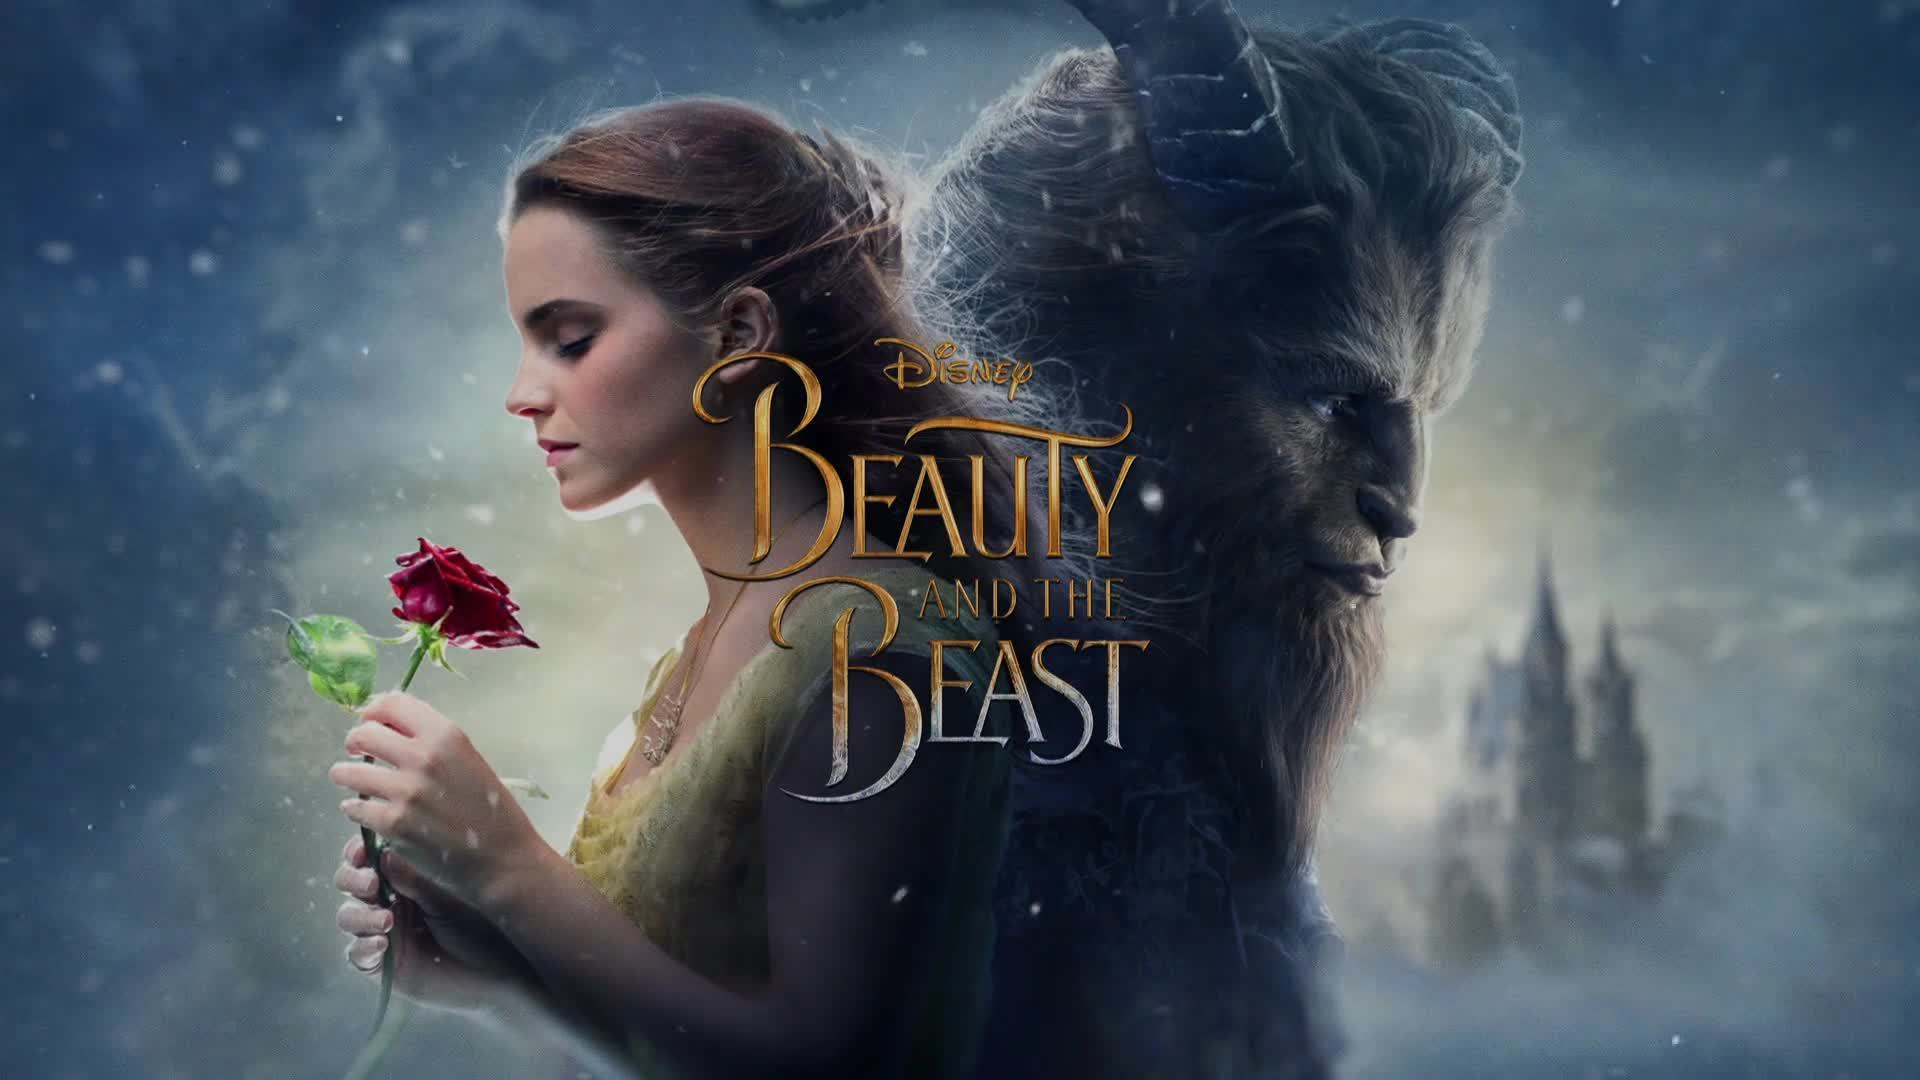 disney's beauty and the beast on digital hd and blu-ray - curvy girl